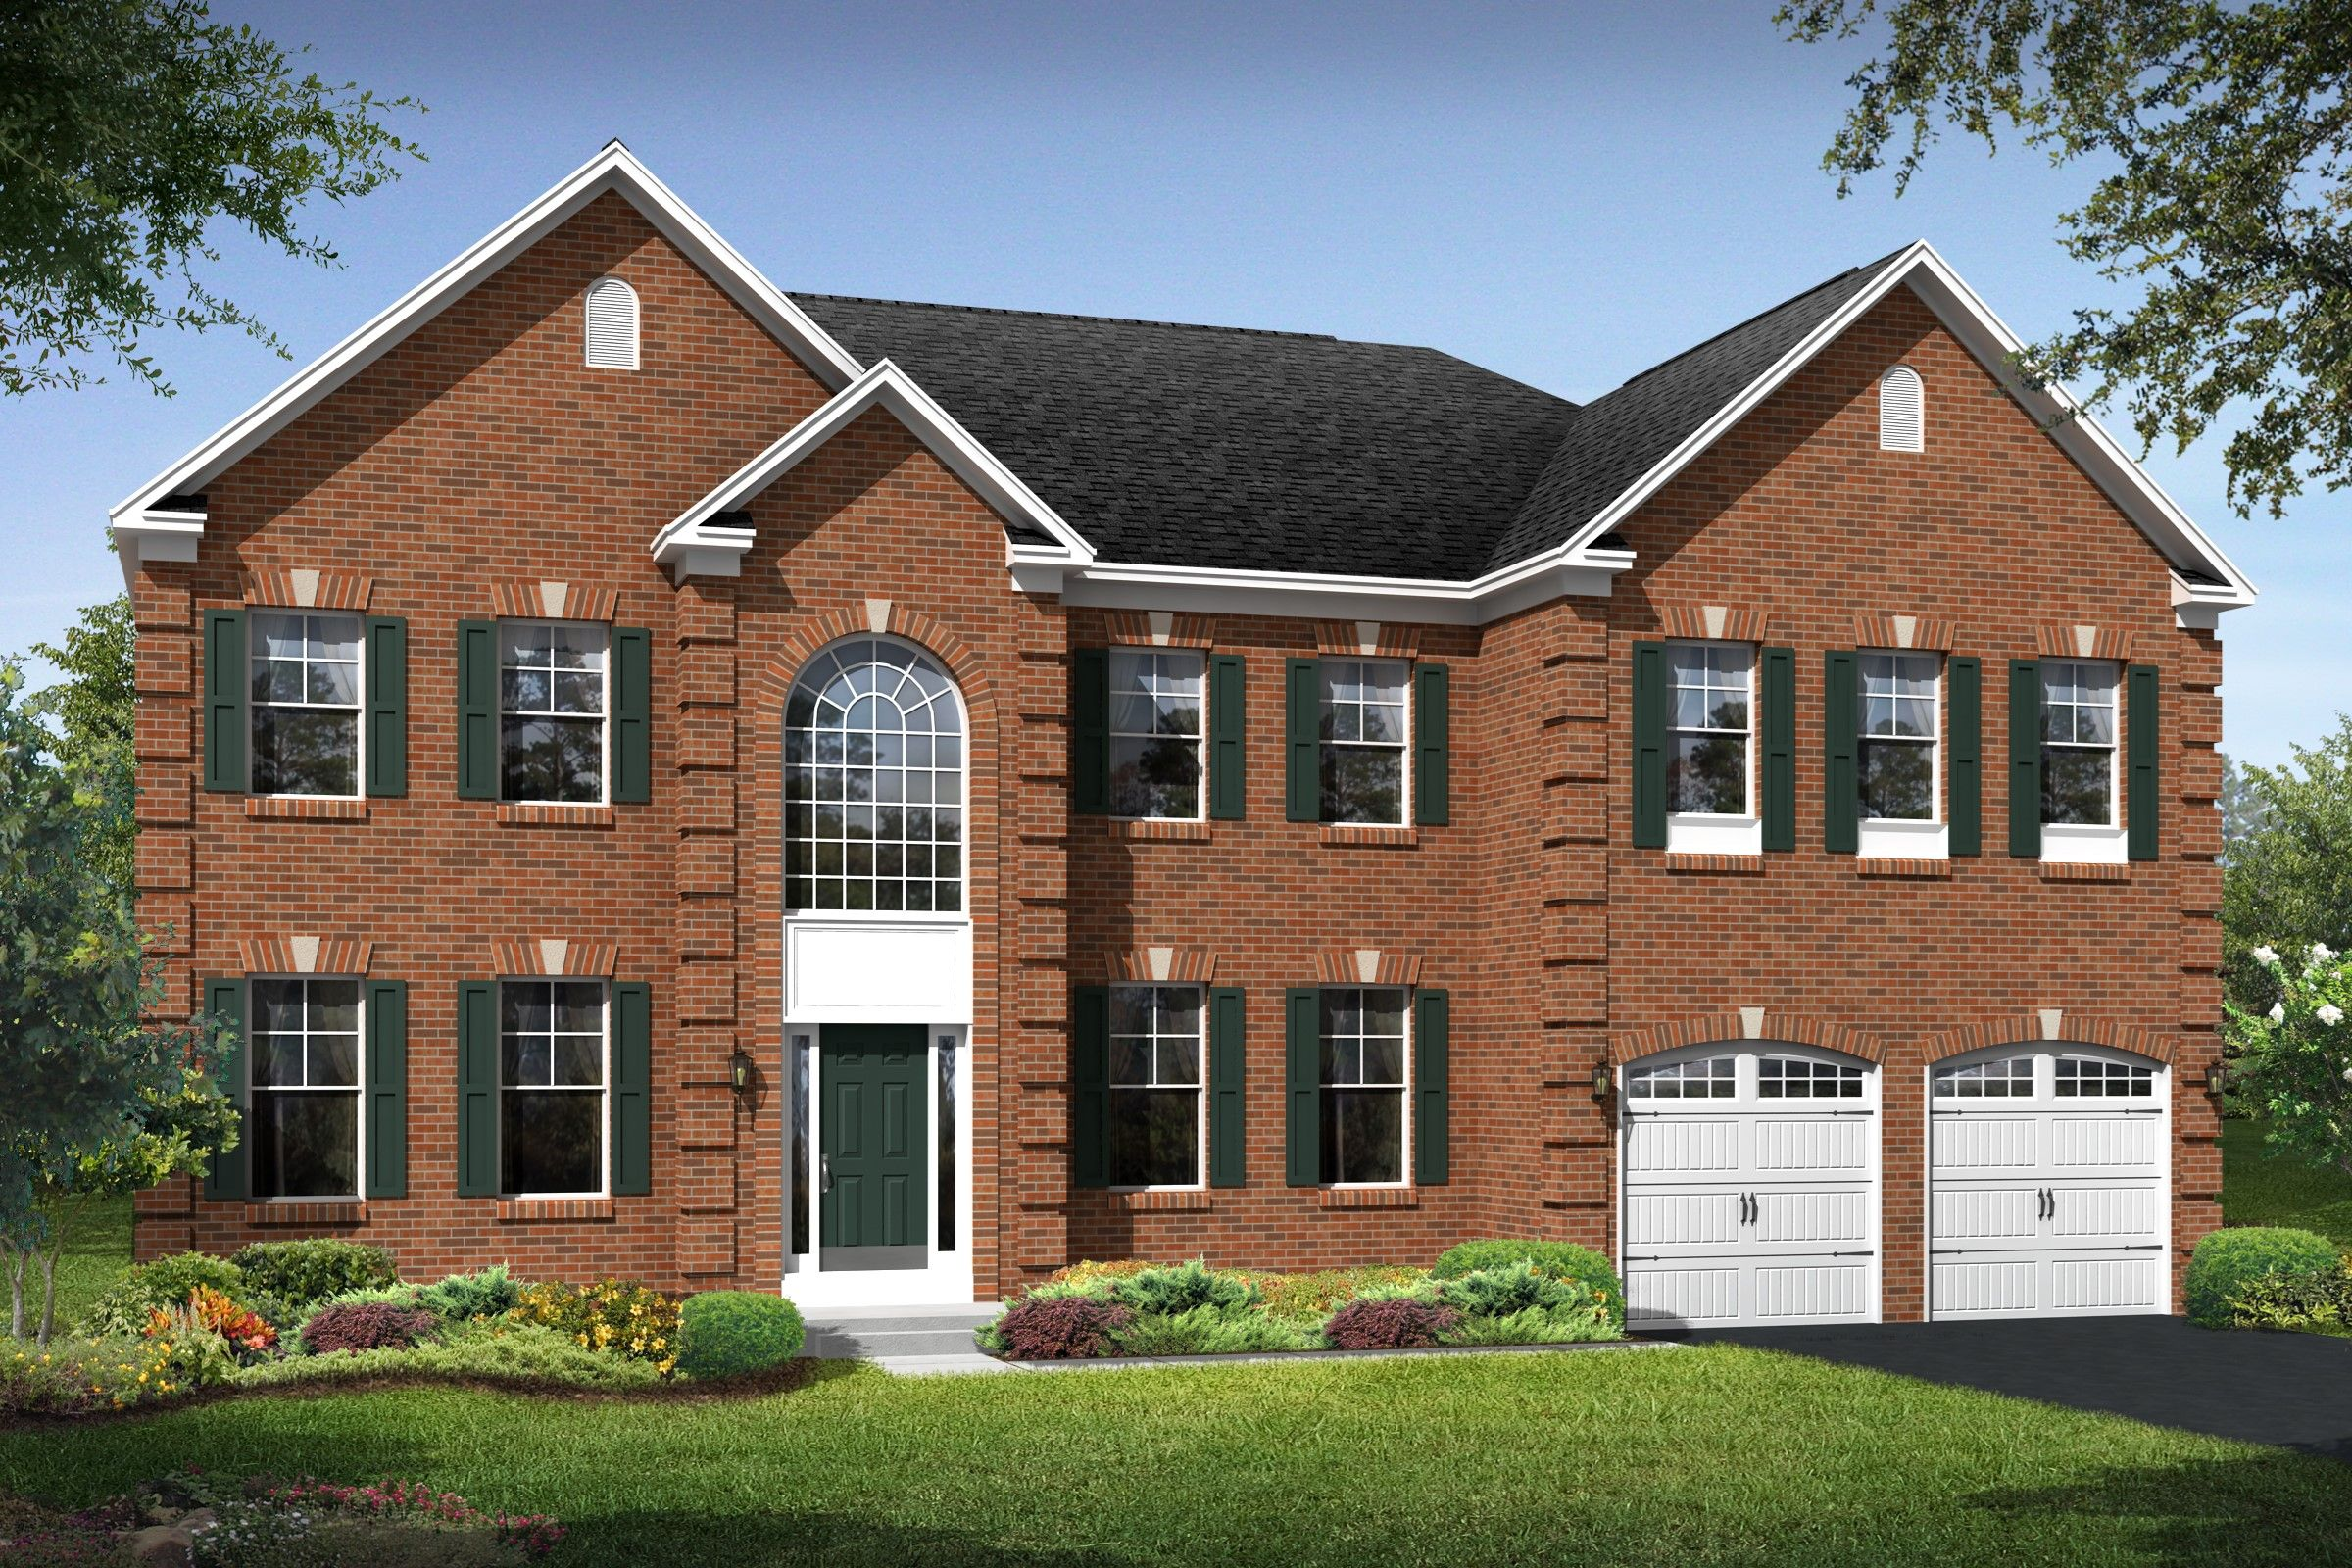 Single Family for Active at Magness Farms - Colorado 1304 Merlot Drive Bel Air, Maryland 21015 United States